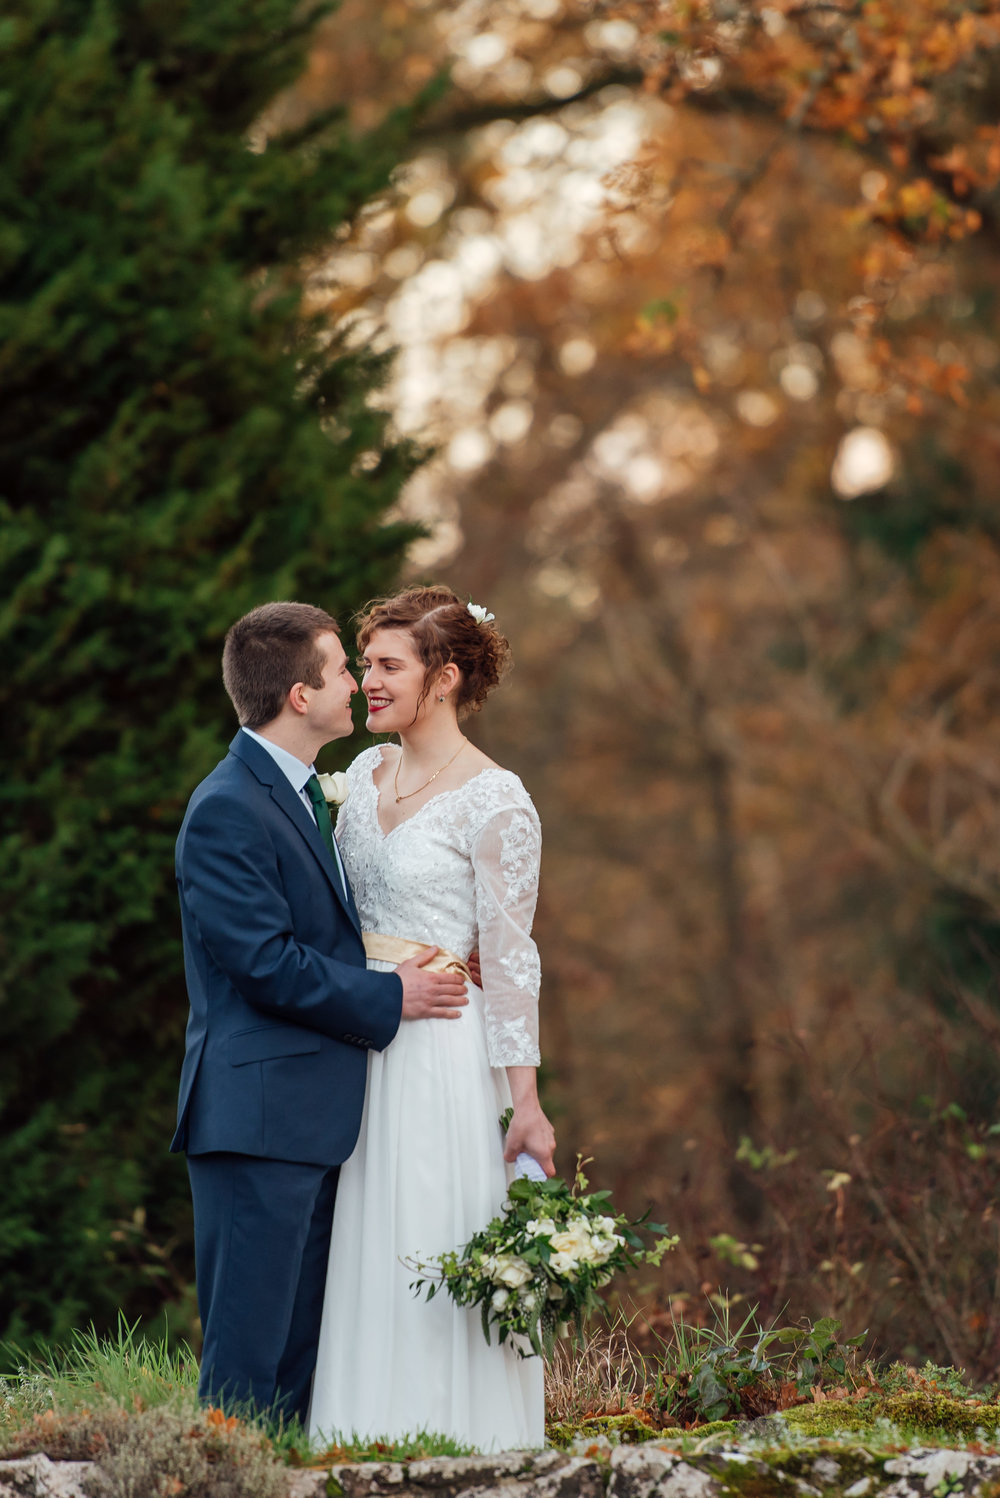 Hampshire-Wedding-Photographer-Hampshire / Tylney-Hall-Wedding / Hook-Hampshire-Wedding-Venue / Amy-James-Photography /Fleet-wedding-photographer-farnborough / sunset-wedding-photograph